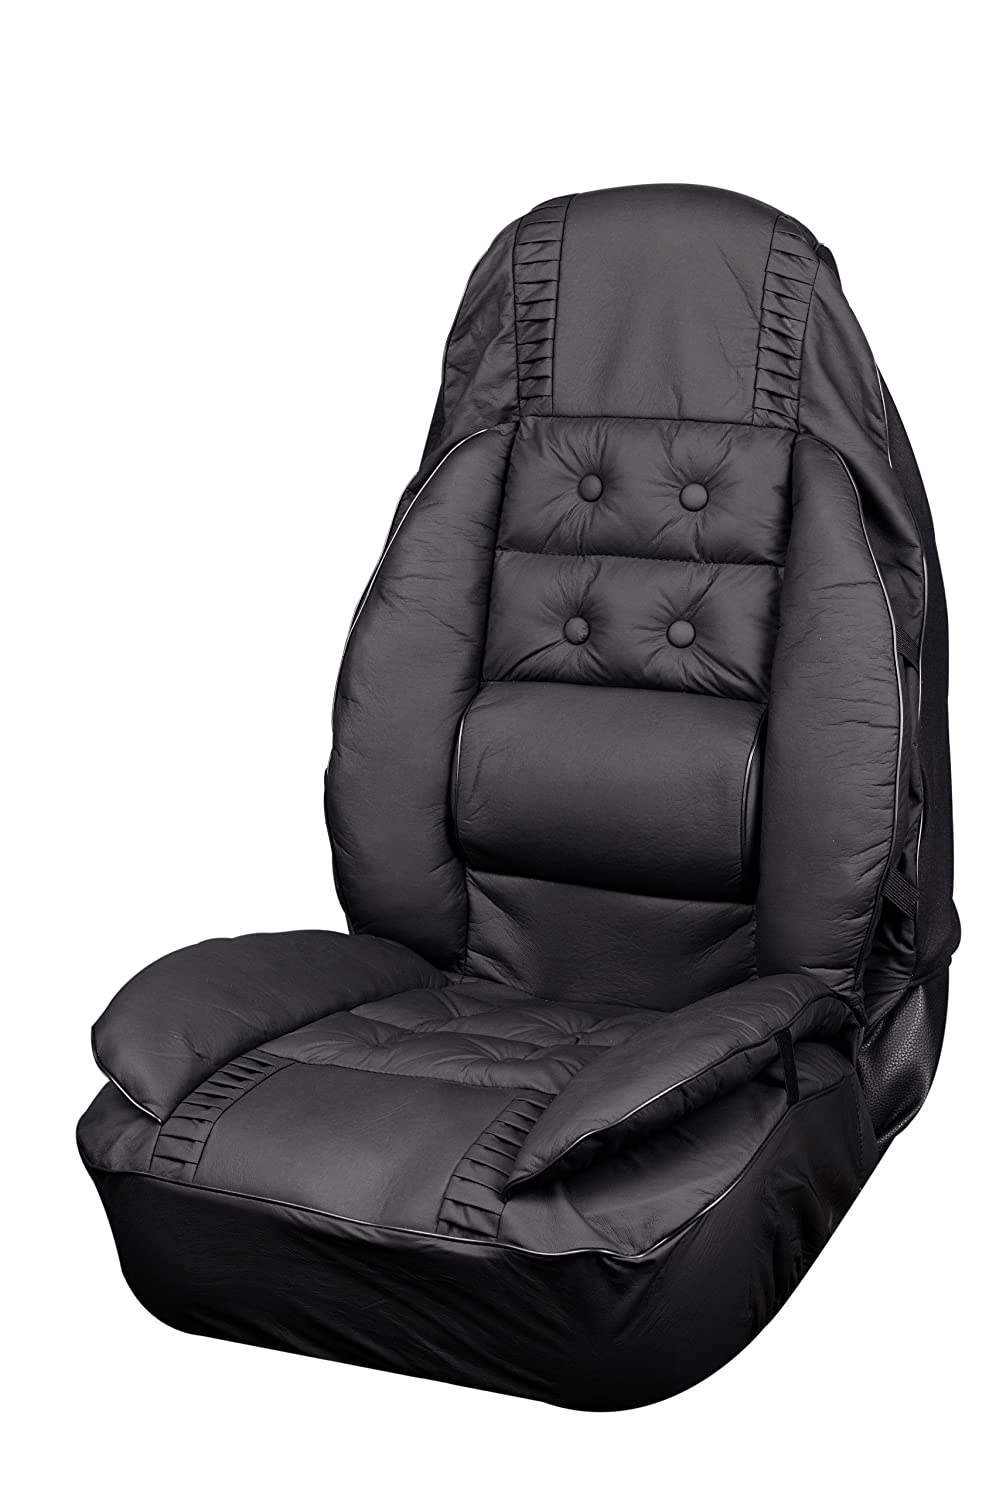 Pack of 1 Allison 66-6006BLK Black Euro Glove Universal Bucket Seat Cover